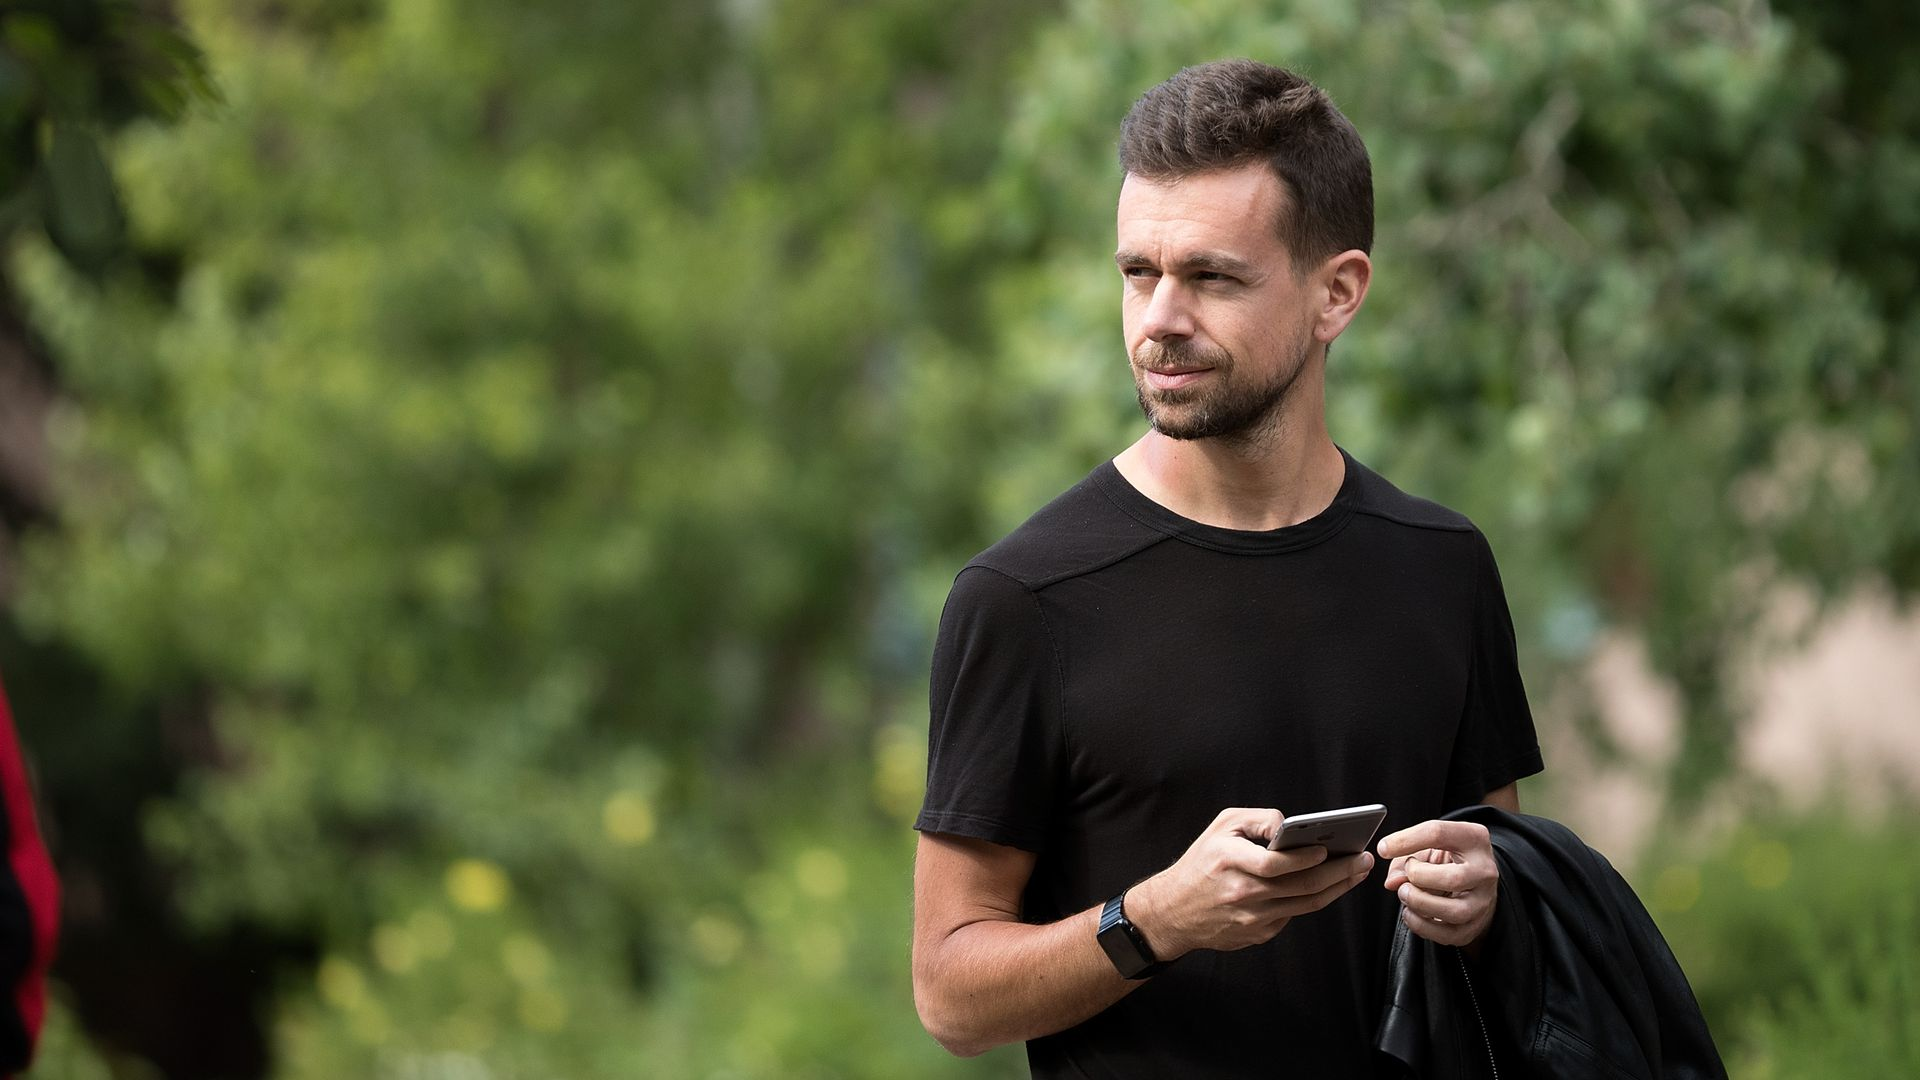 Twitter CEO Jack Dorsey wears a black t-shirt and stands outside